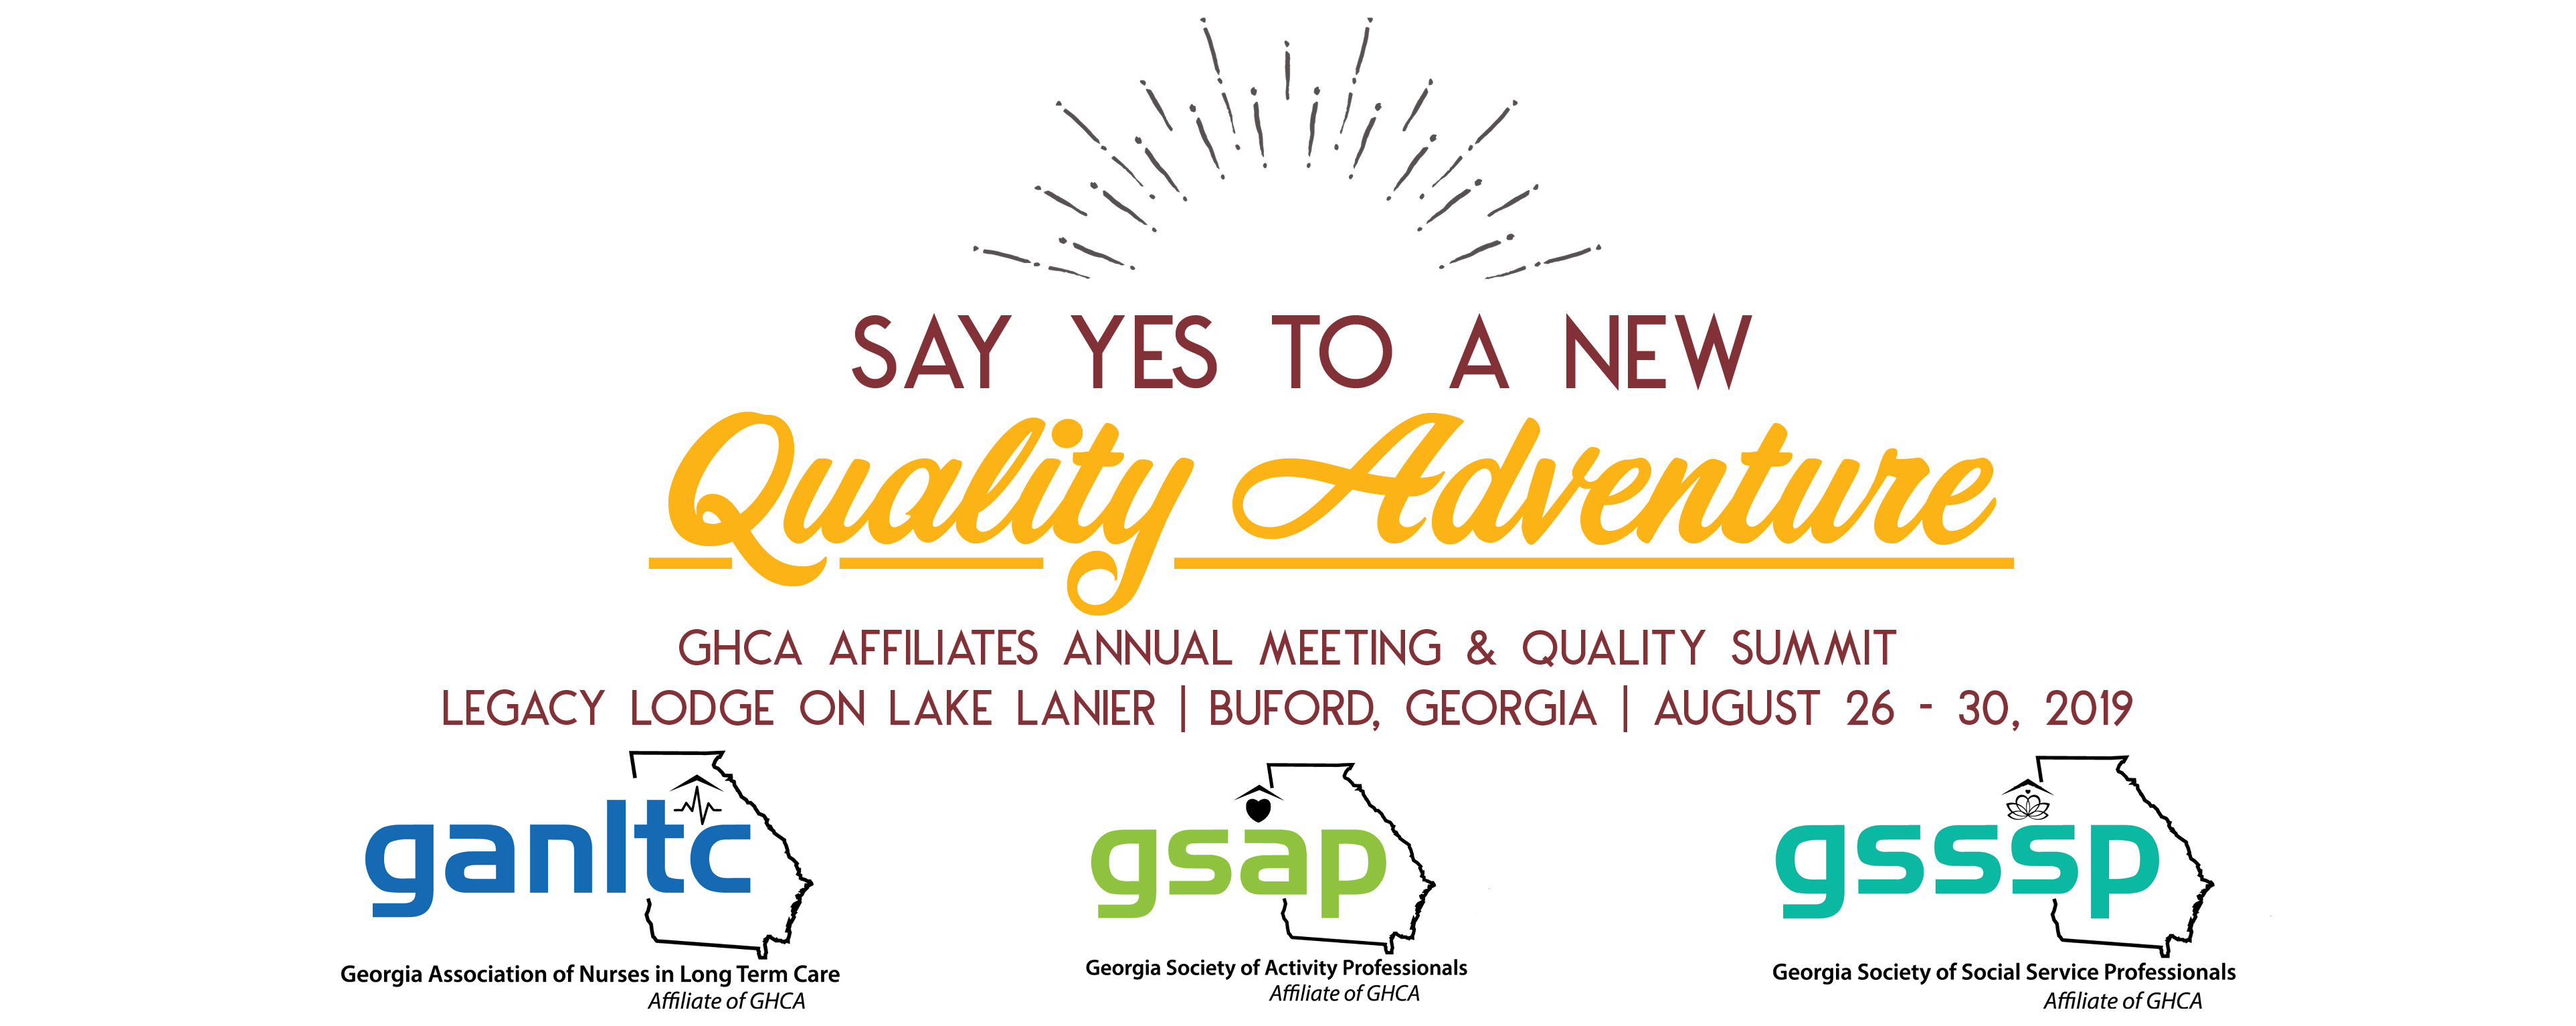 GHCA Affiliates Annual Meeting & Quality Summit